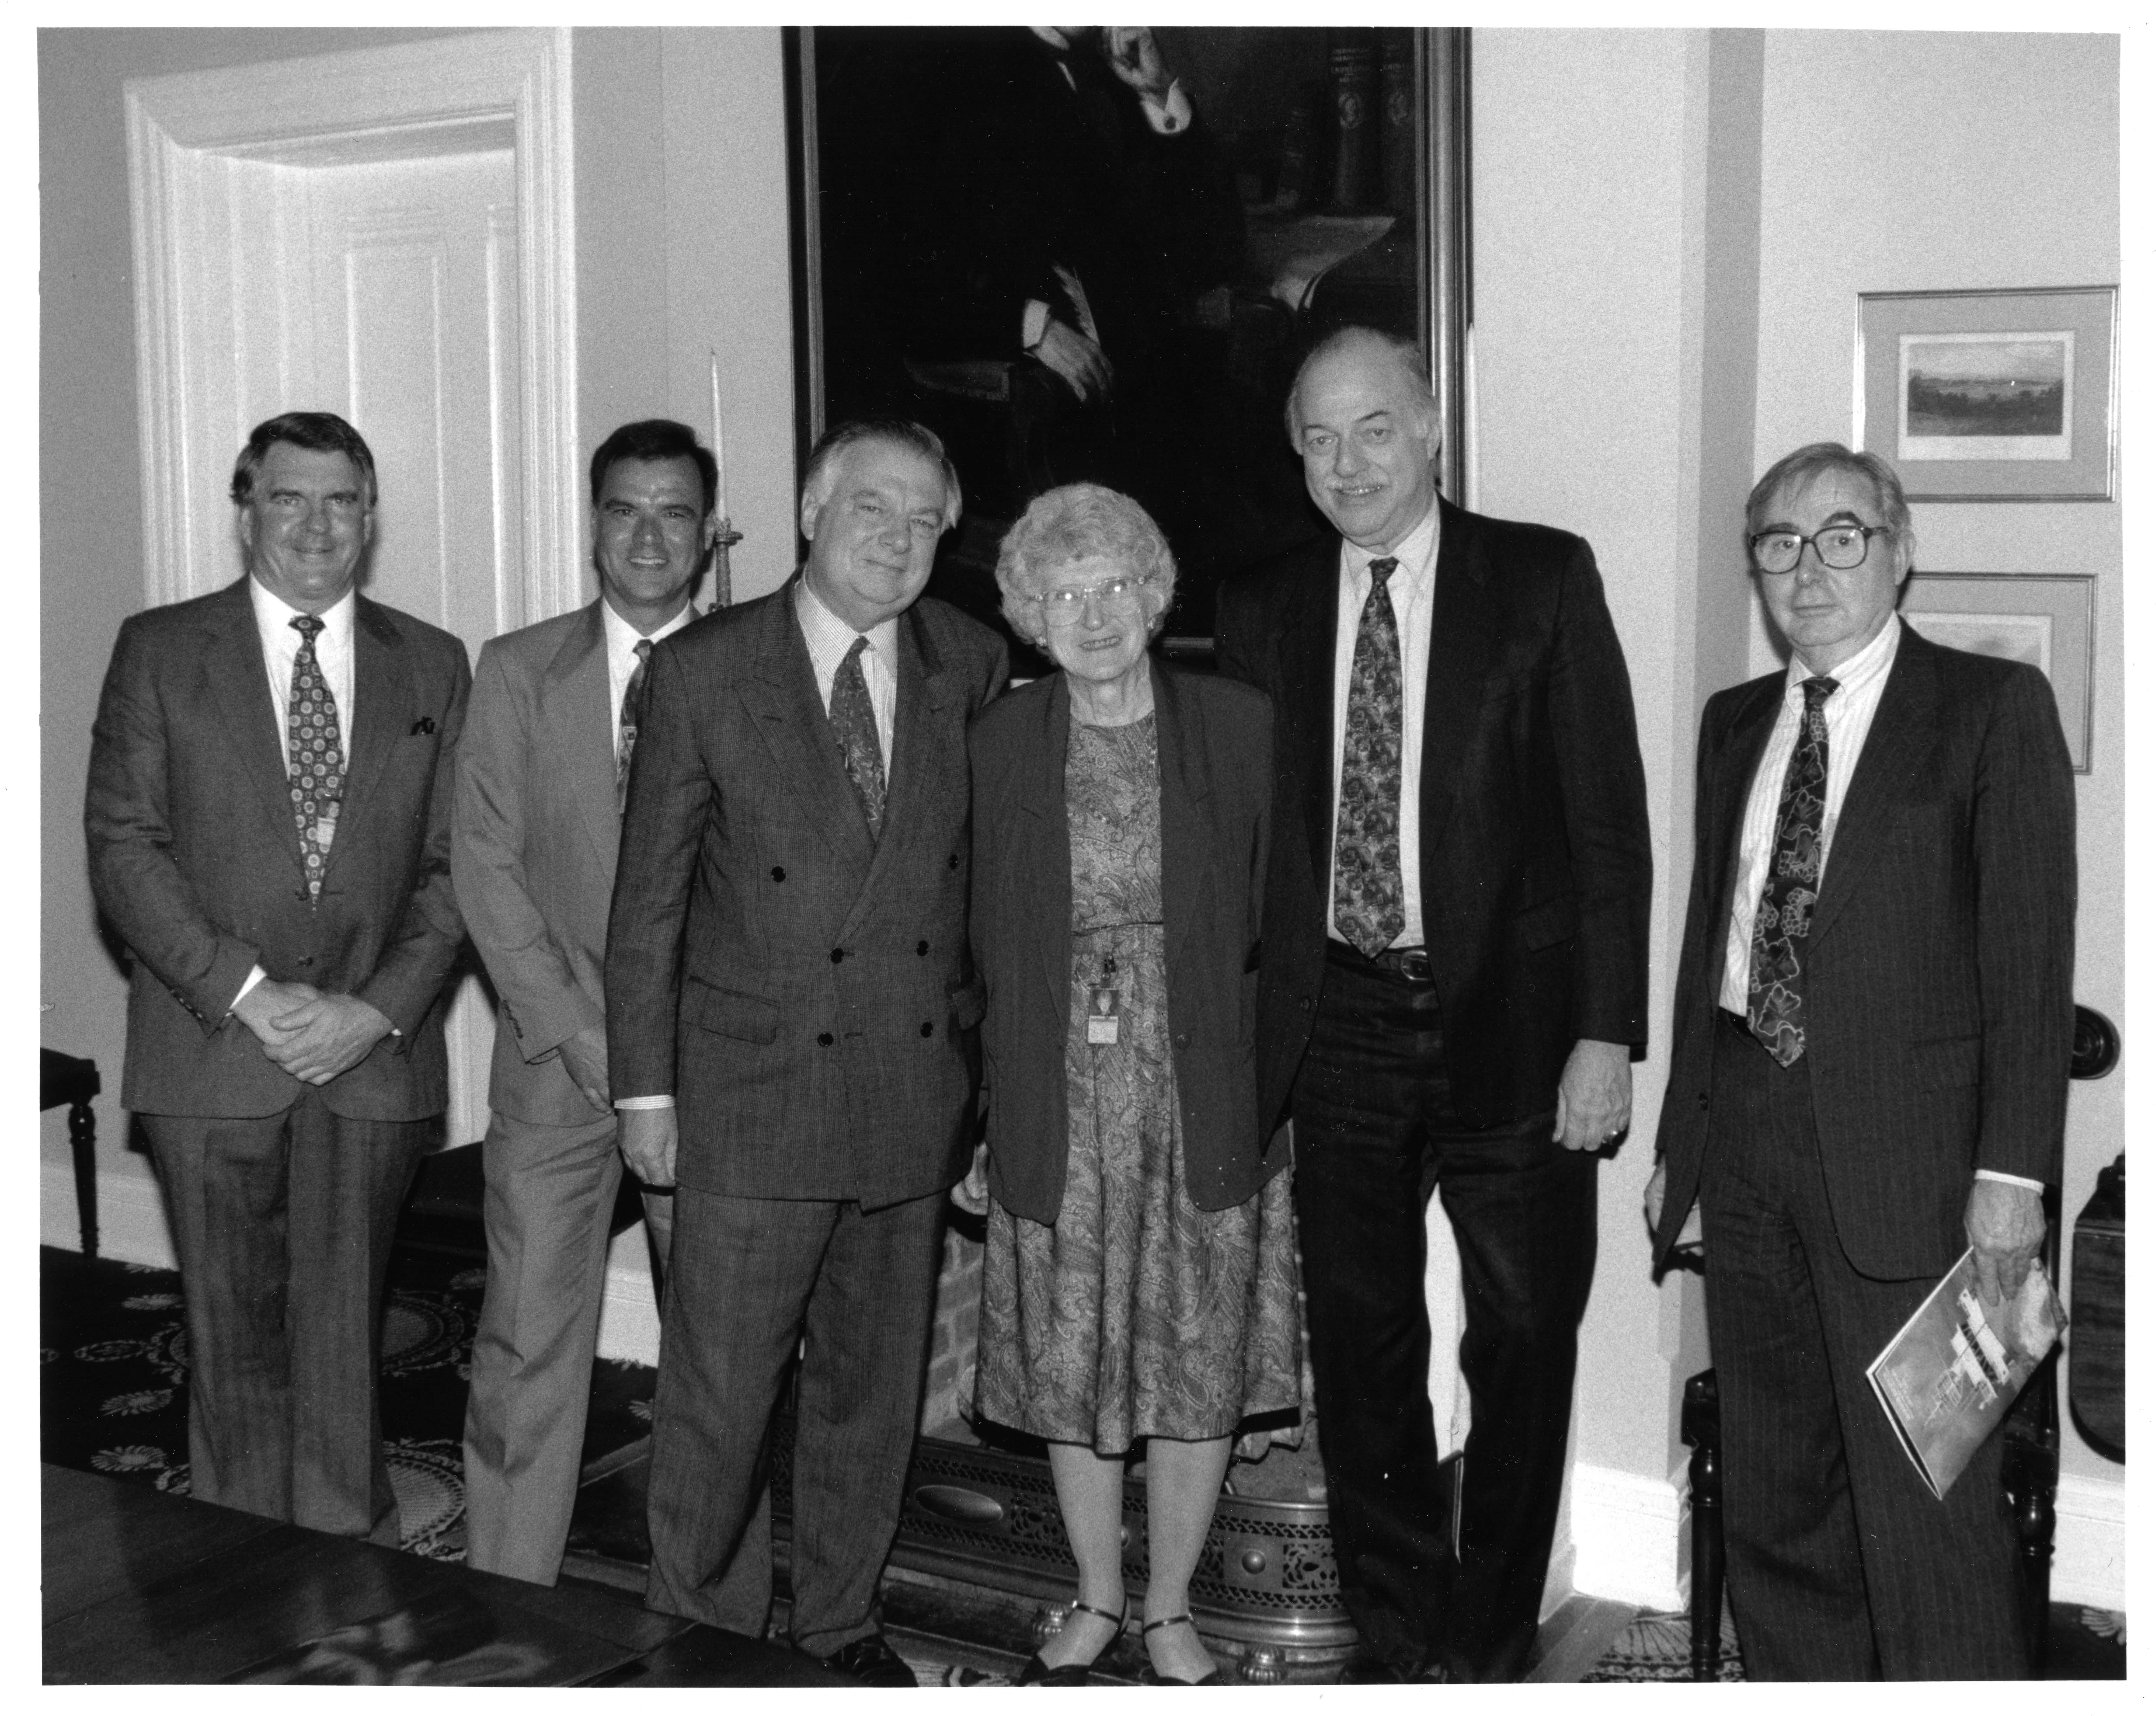 Mary Rice stands next to Secretary Adams and four other men.